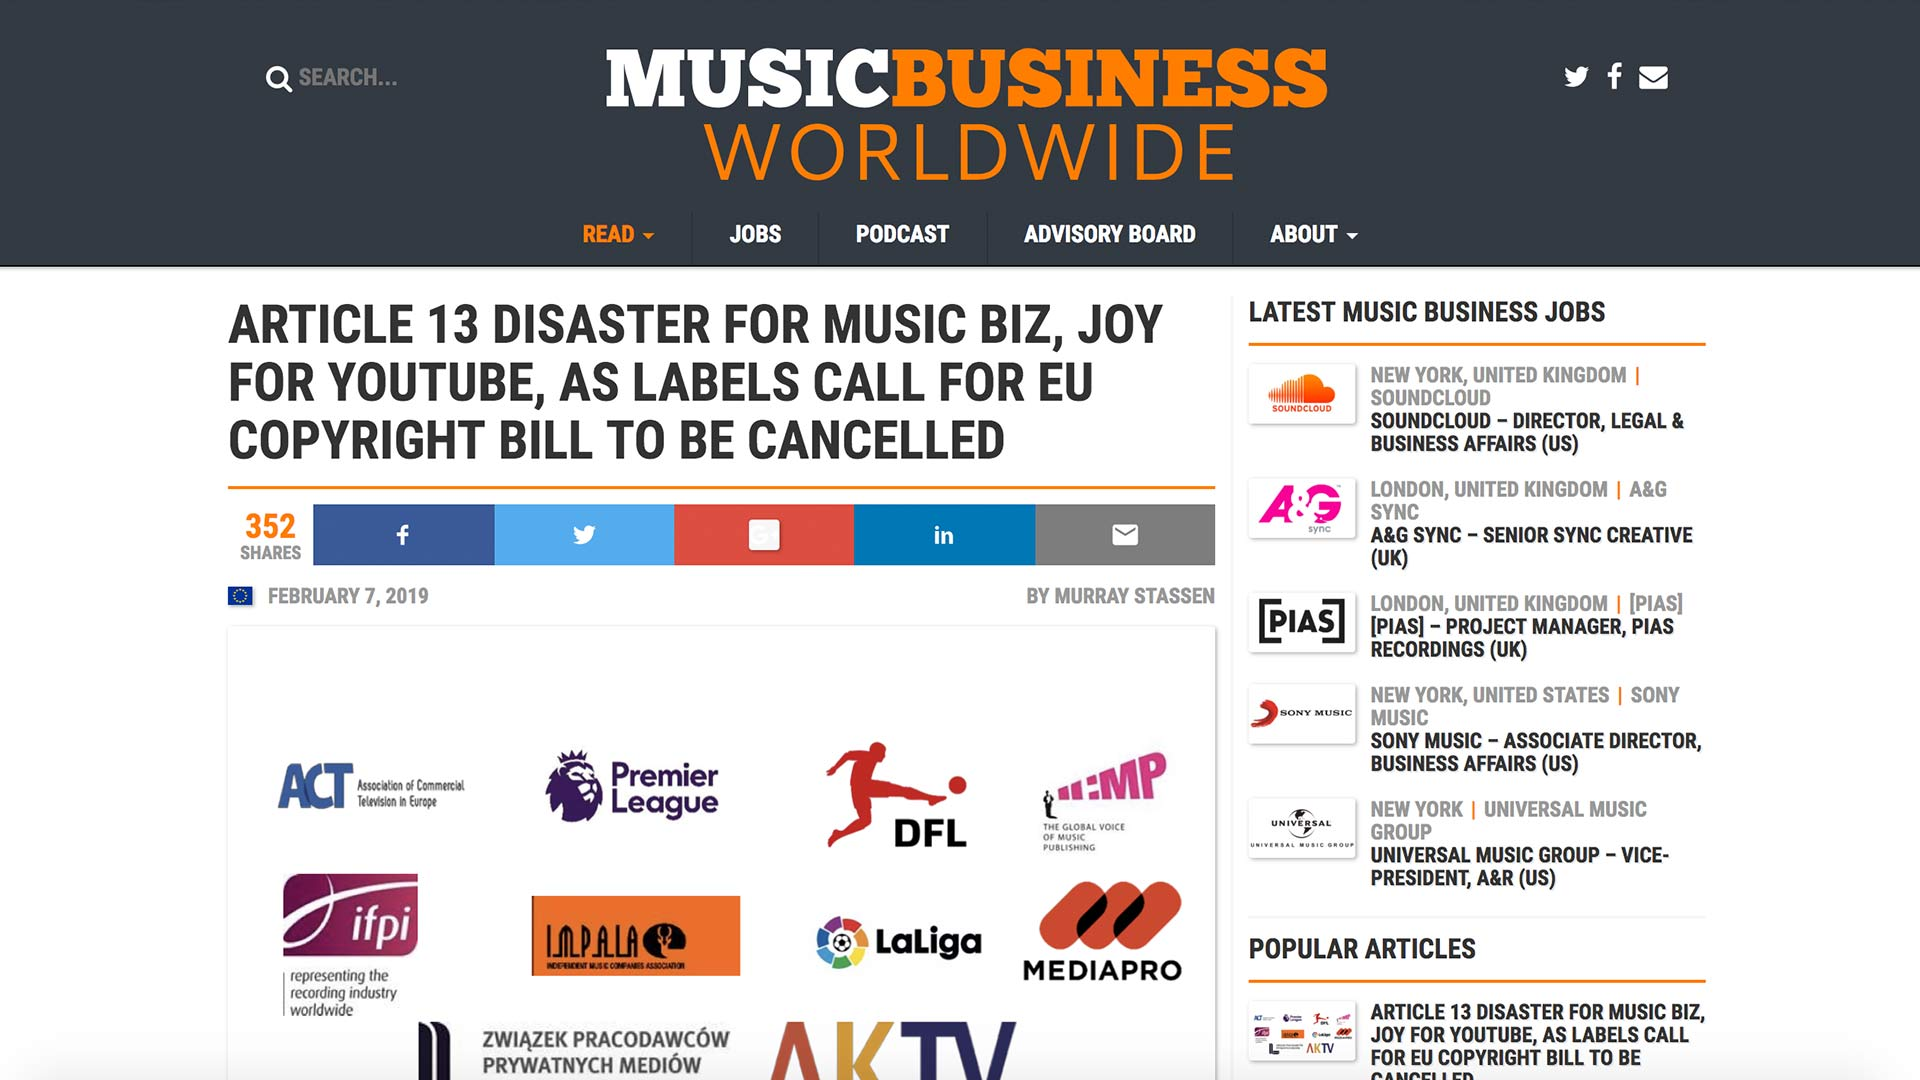 Fairness Rocks News ARTICLE 13 DISASTER FOR MUSIC BIZ, JOY FOR YOUTUBE, AS LABELS CALL FOR EU COPYRIGHT BILL TO BE CANCELLED